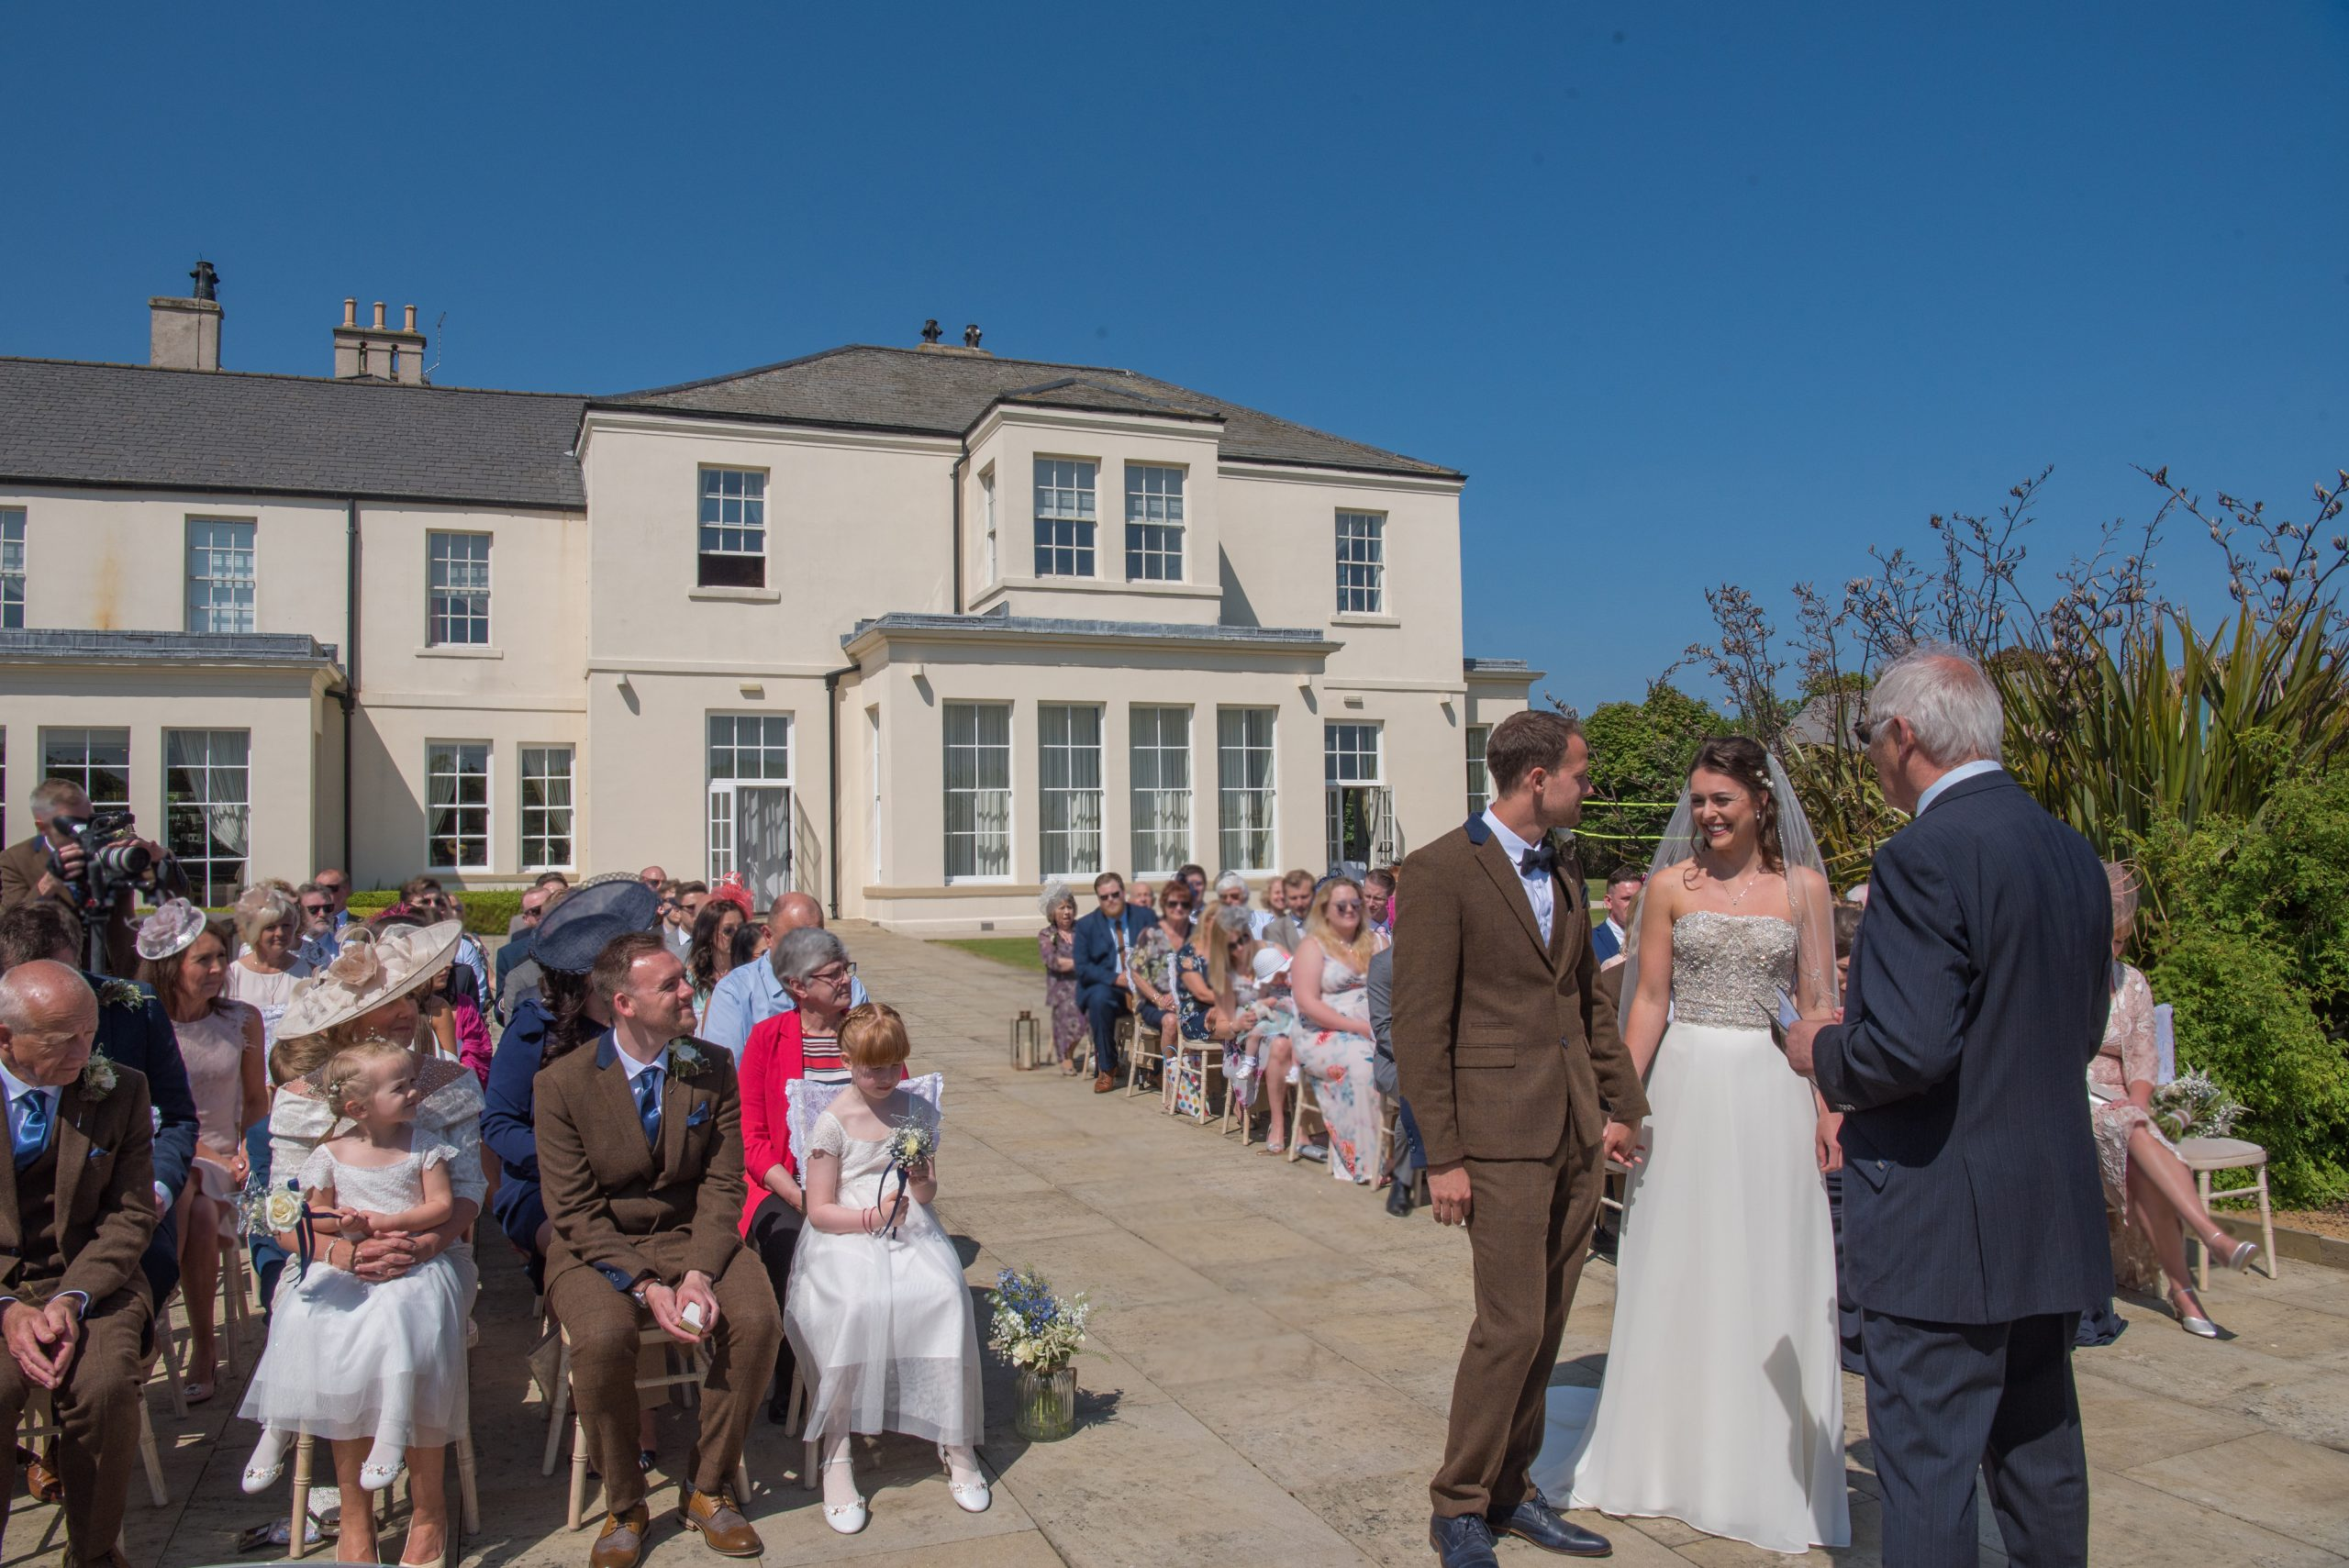 Outdoor ceremony at Seaham Hall